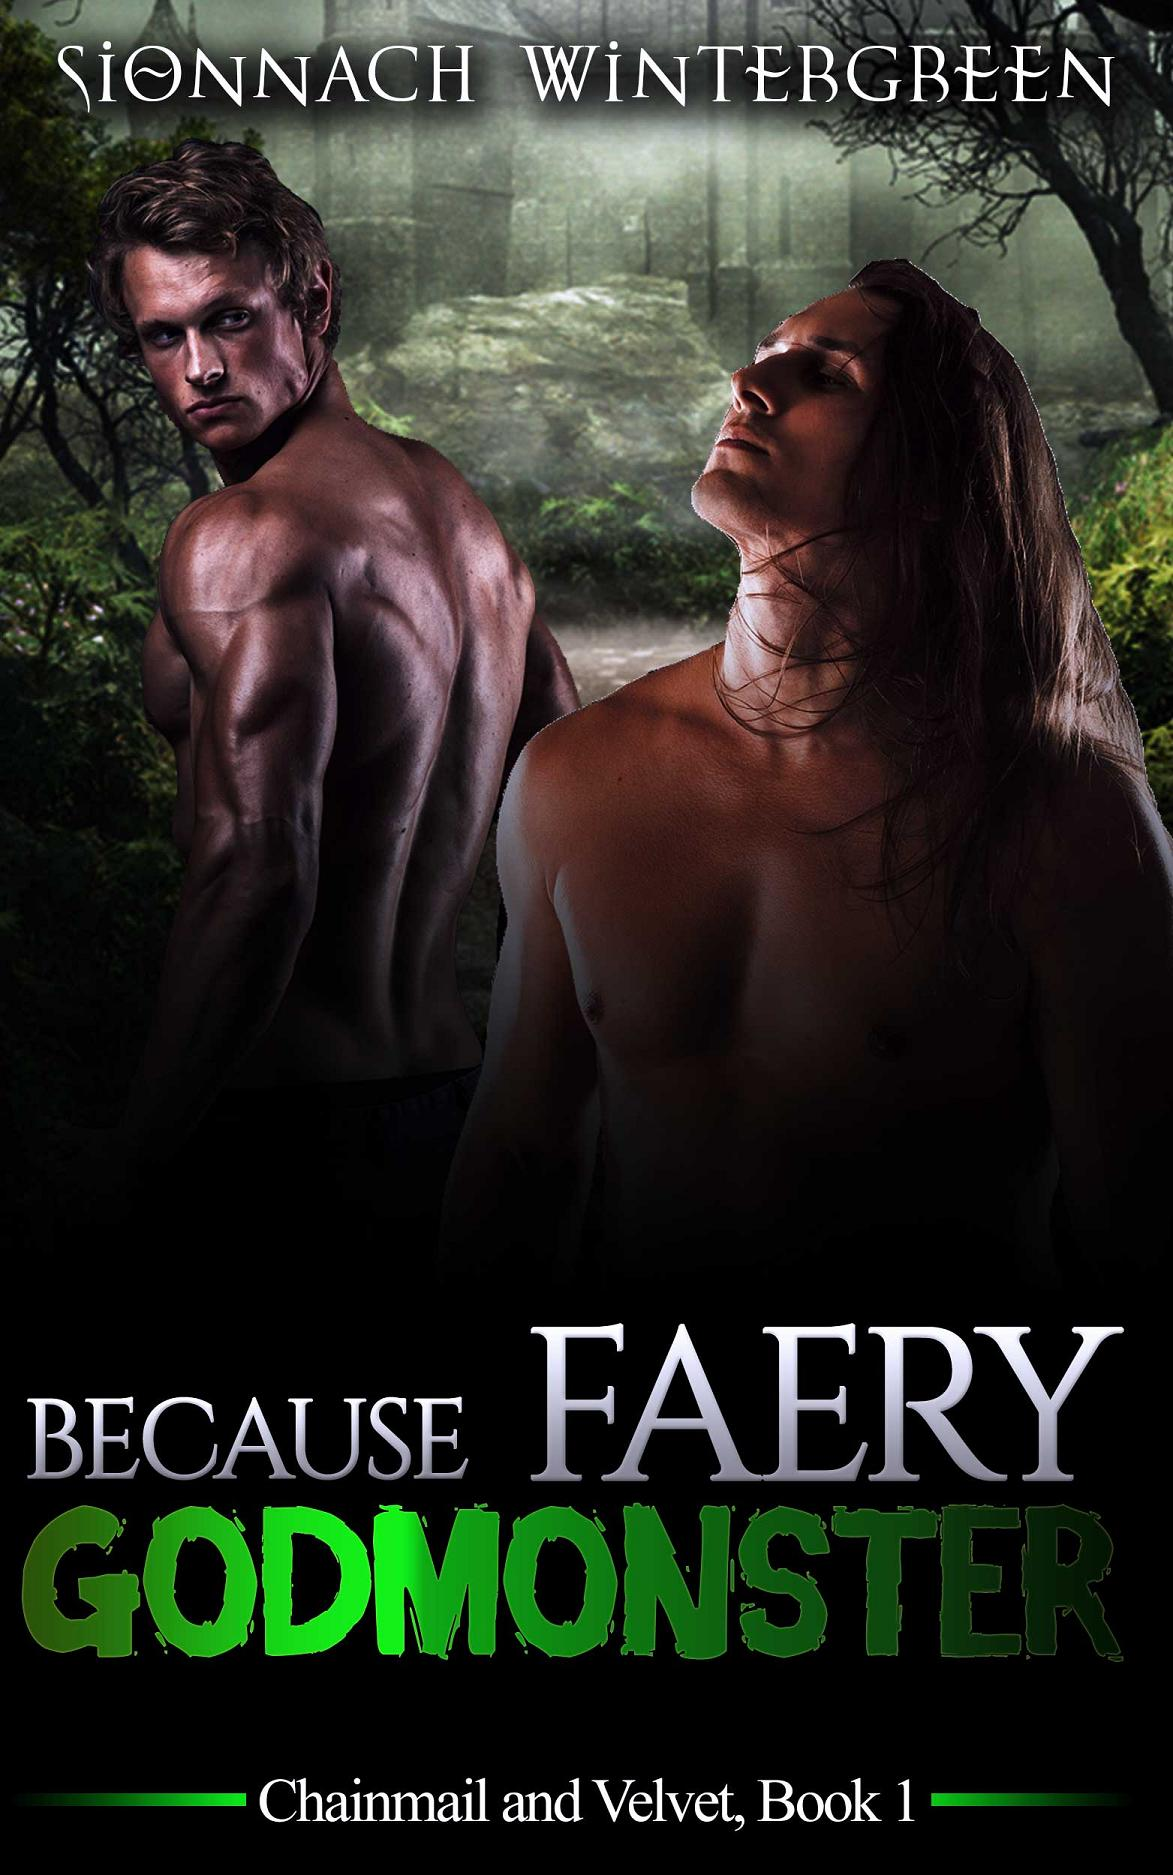 Because Fairy Godmonster - Sionnach Wintergreen - Chainmail and Velvet, Book 1